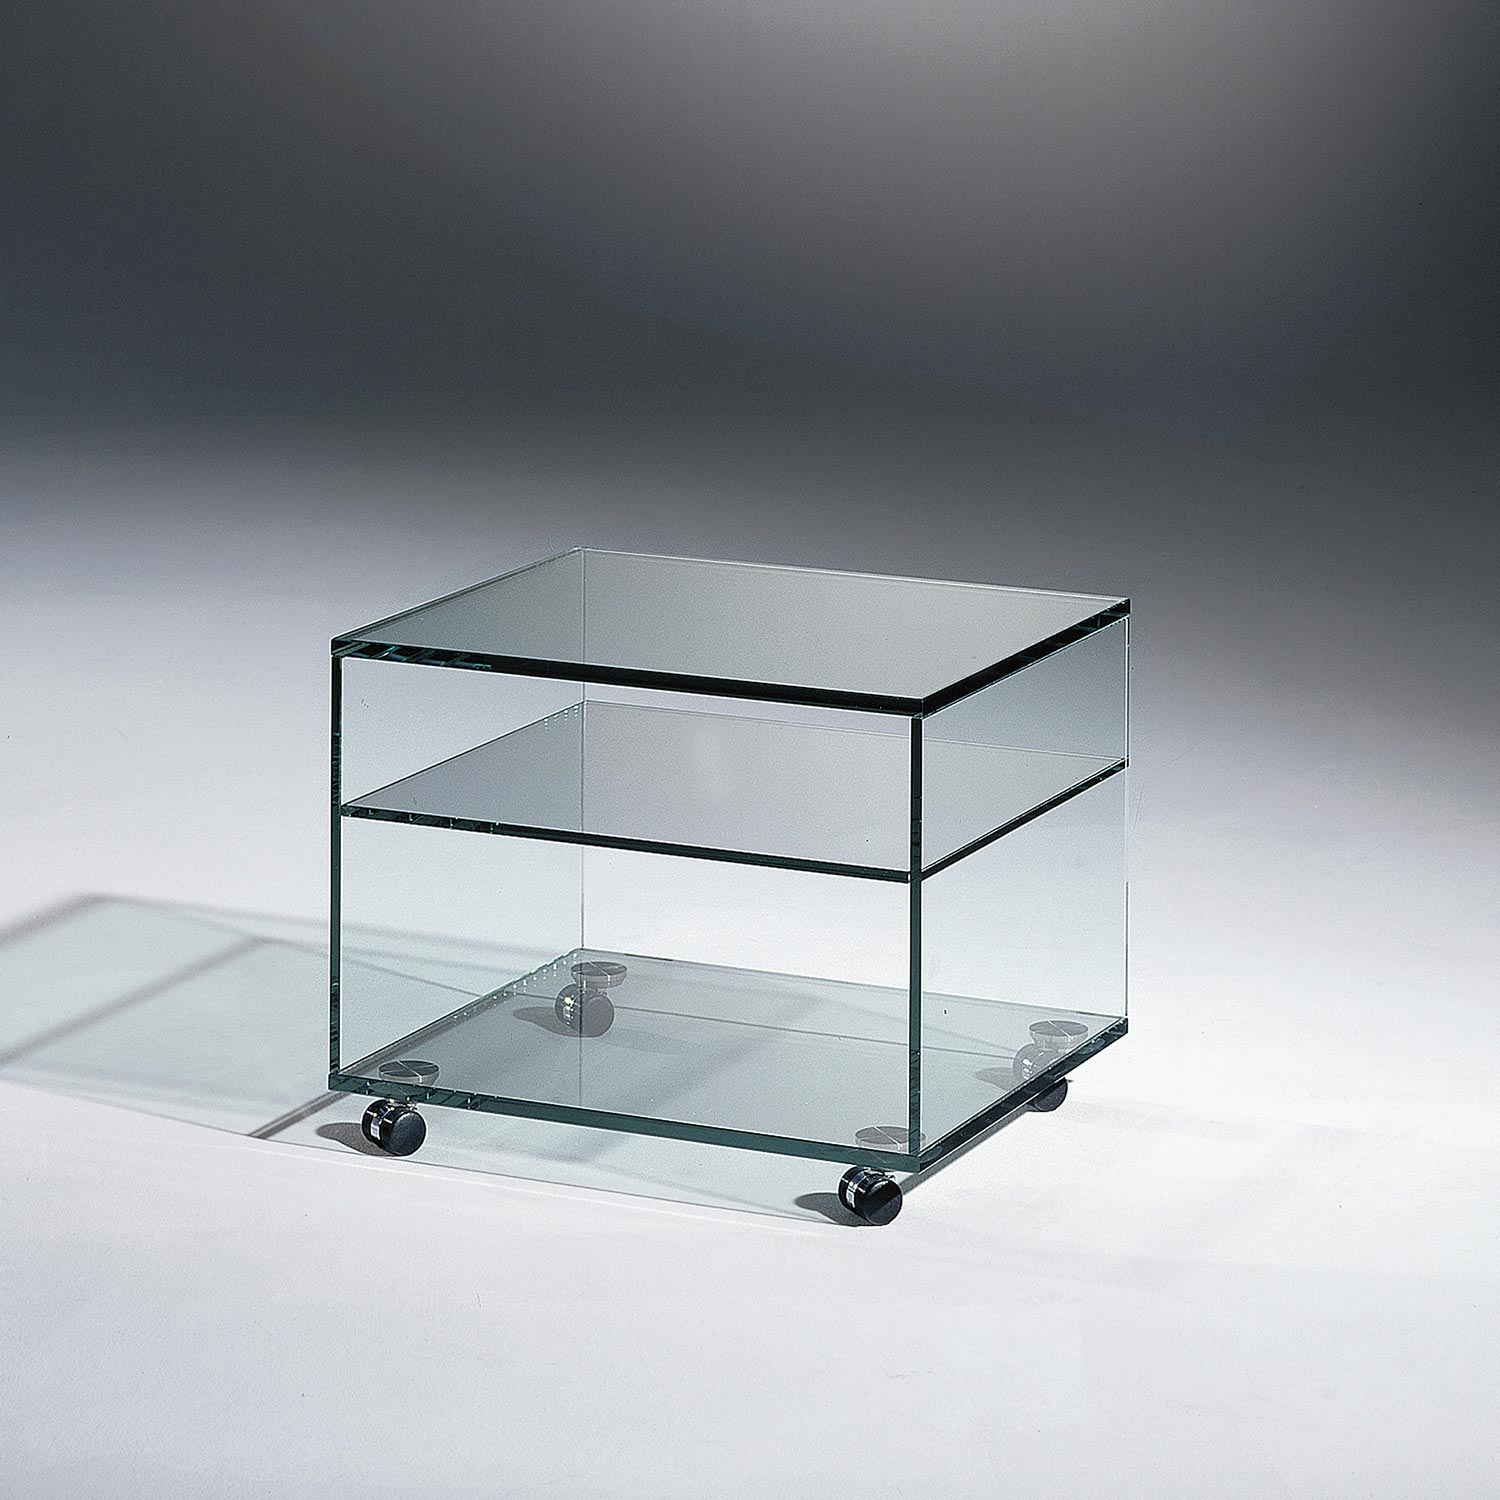 Buy Elegant Glass Tv Table From Dreieck Design Diogenes